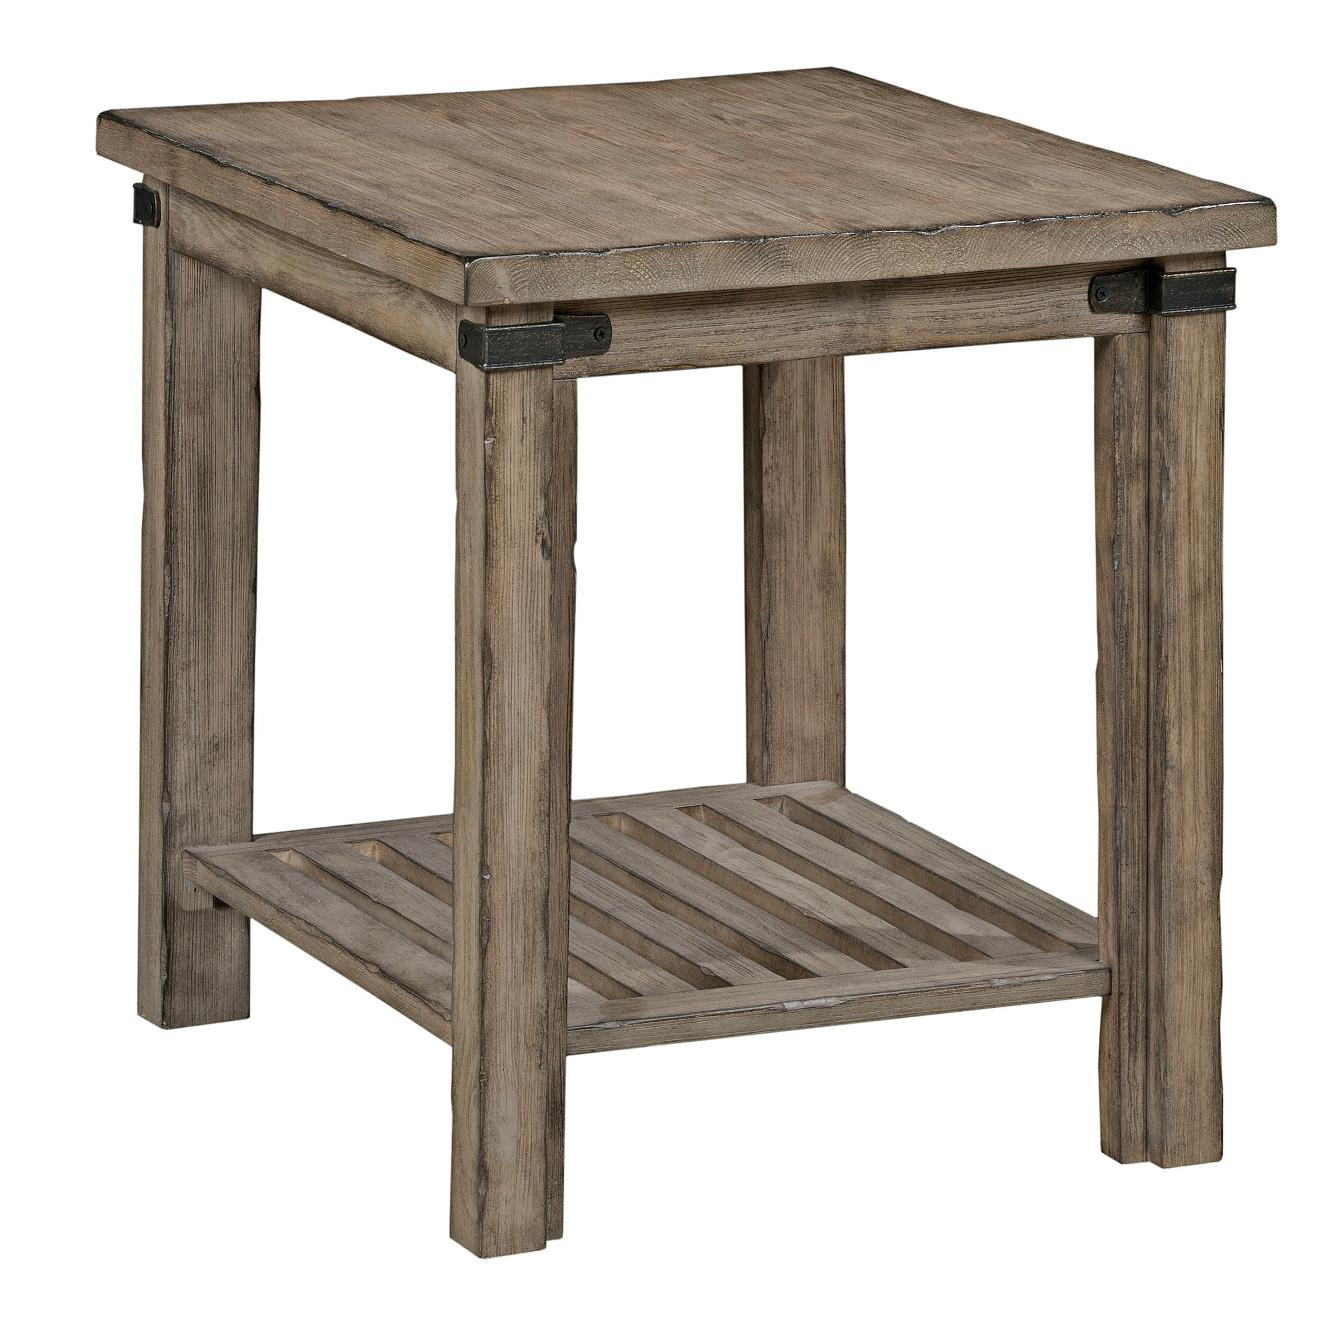 kincaid furniture foundry rustic weathered gray end table lindy products color tables kmart kitchen and chairs mainstays assembly instructions mosaic top patio side birch lane